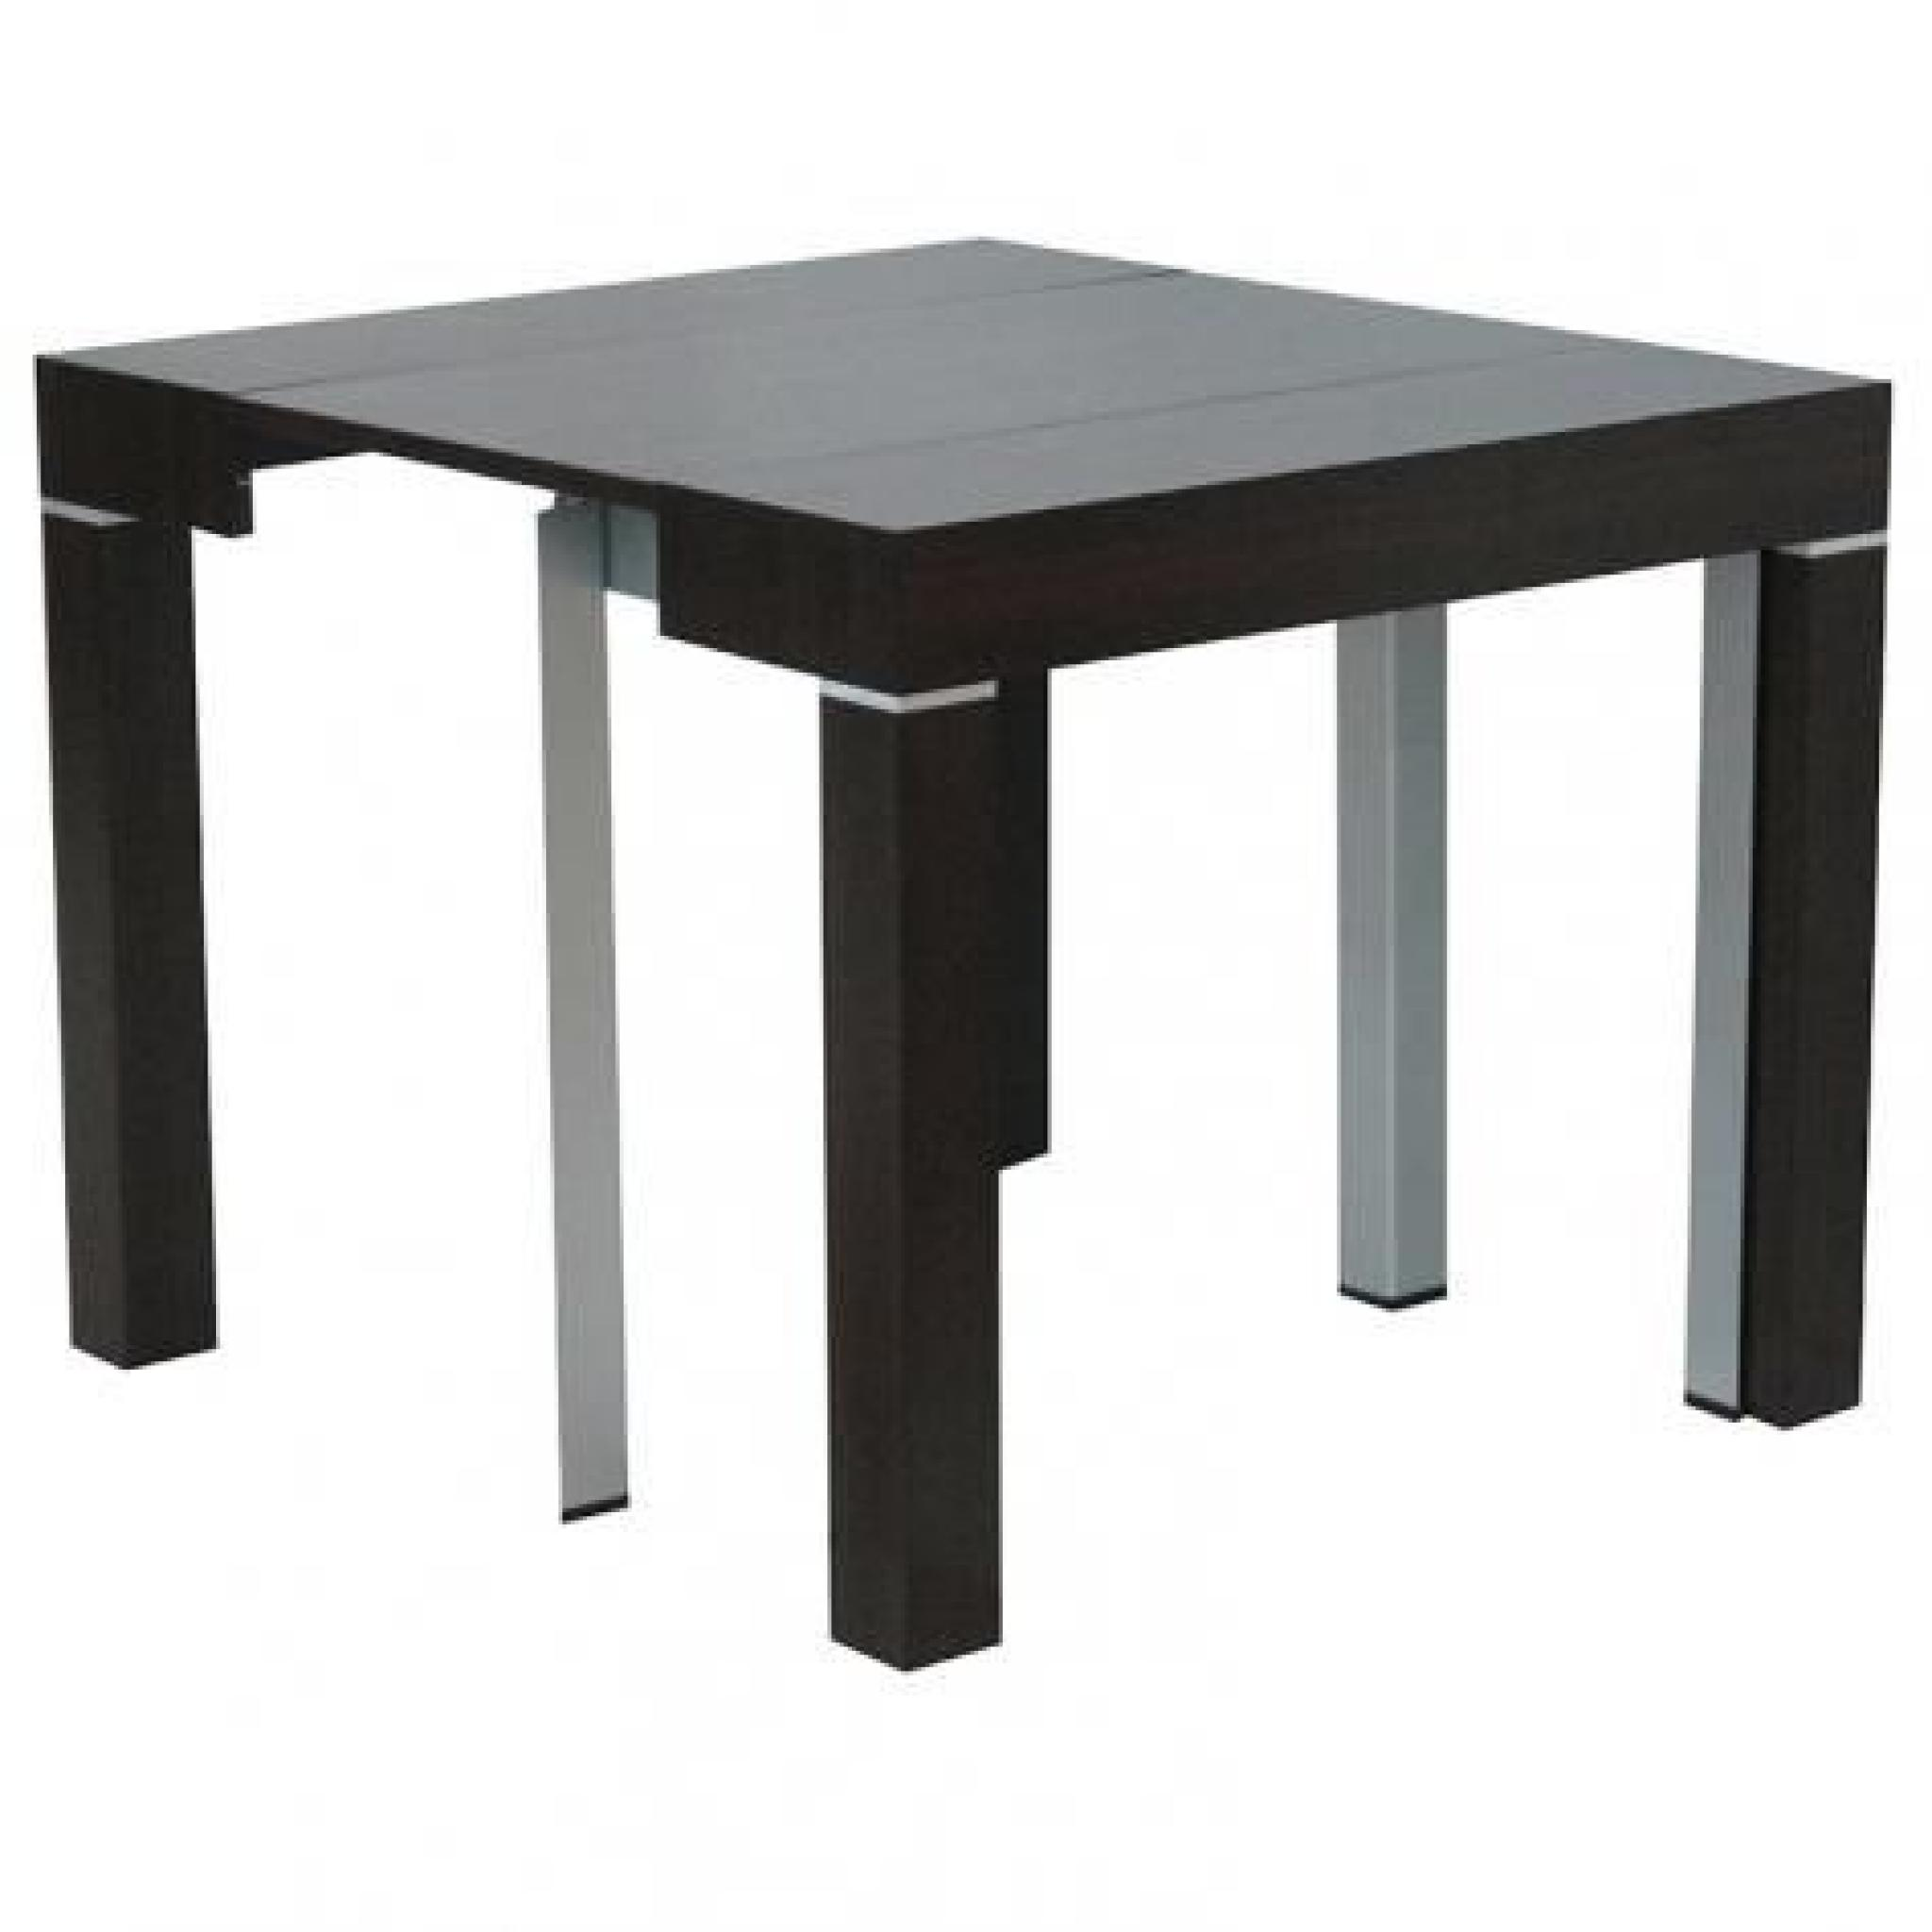 Table console extensible wenge avec 4 rallonges alesia for Table salle a manger wenge